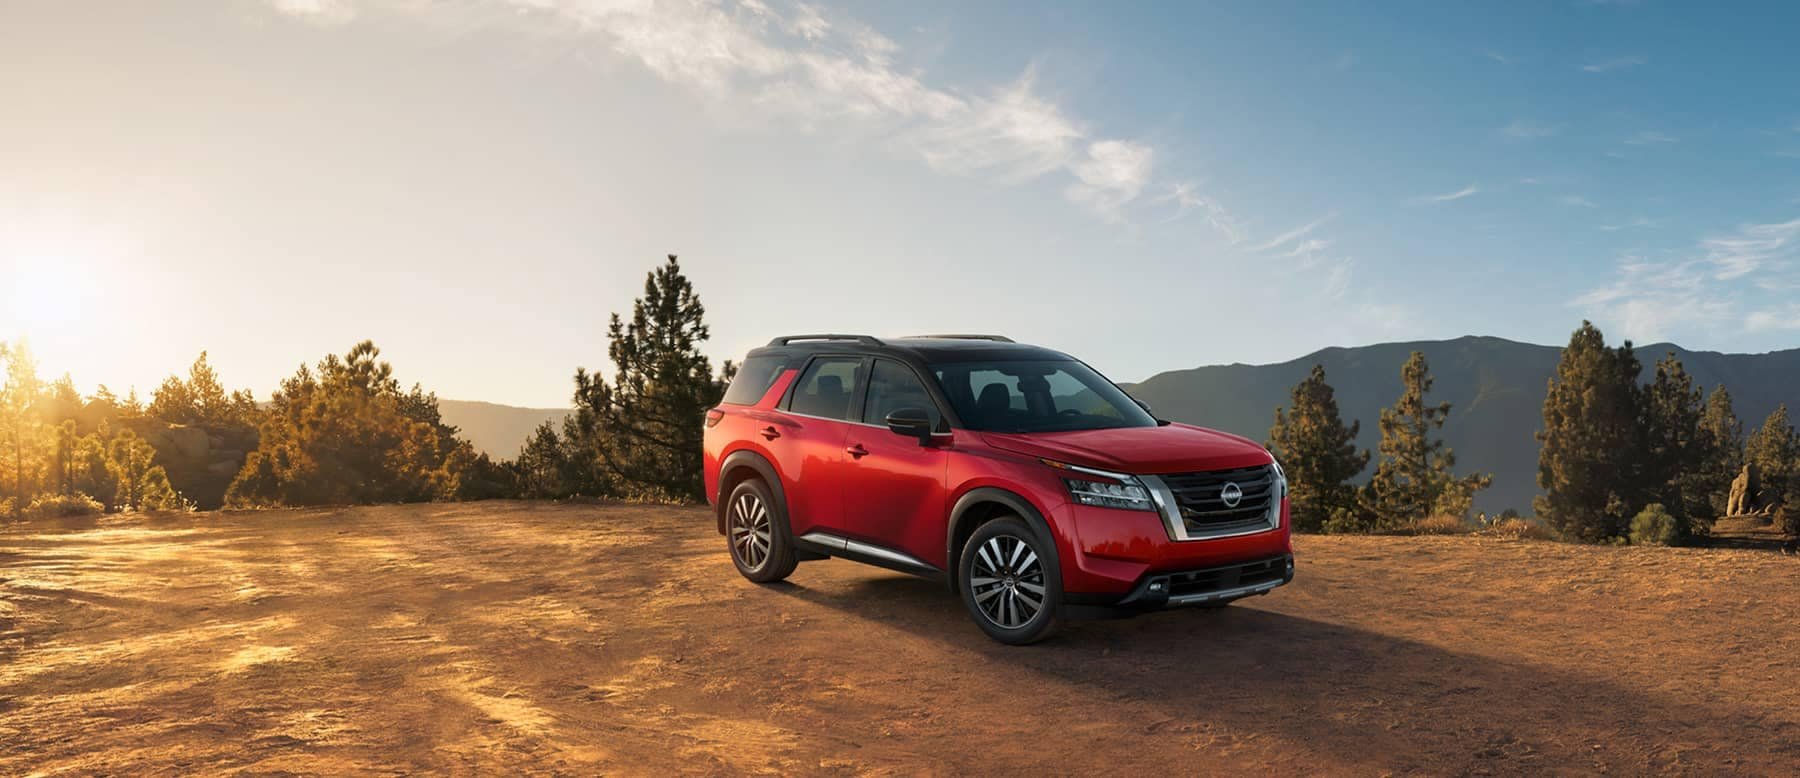 SEO image of Nissan Red SUV on mountaintop